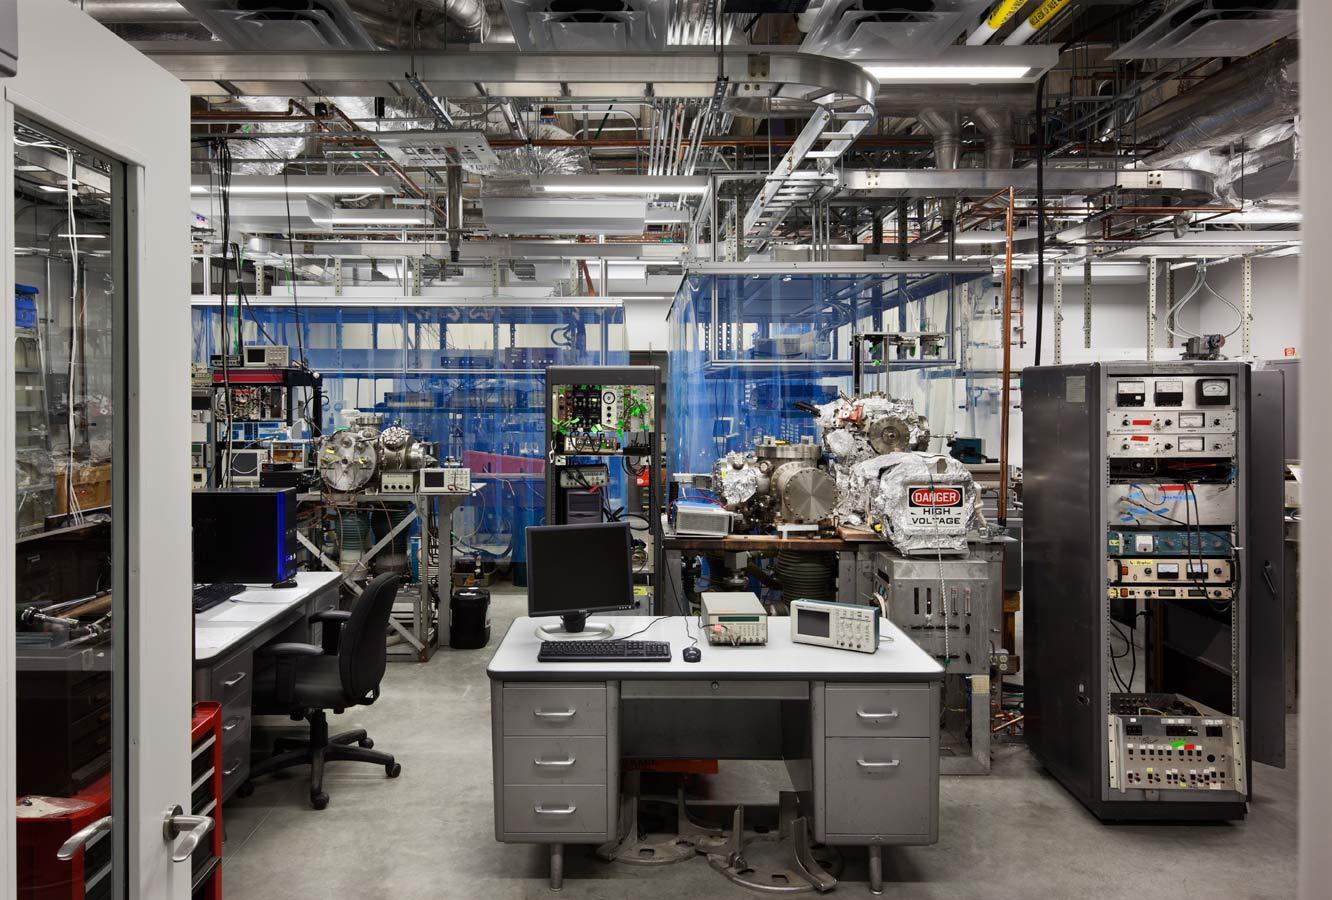 <p>Researchers perform sensitive physics experiments in a highly stabilized basement lab protected from humidity and vibrations. The laboratories were designed to meet the needs of Rice's present researchers, with the flexibility to accommodate future generations. <br><small>© Peter Aaron/OTTO</small></p>